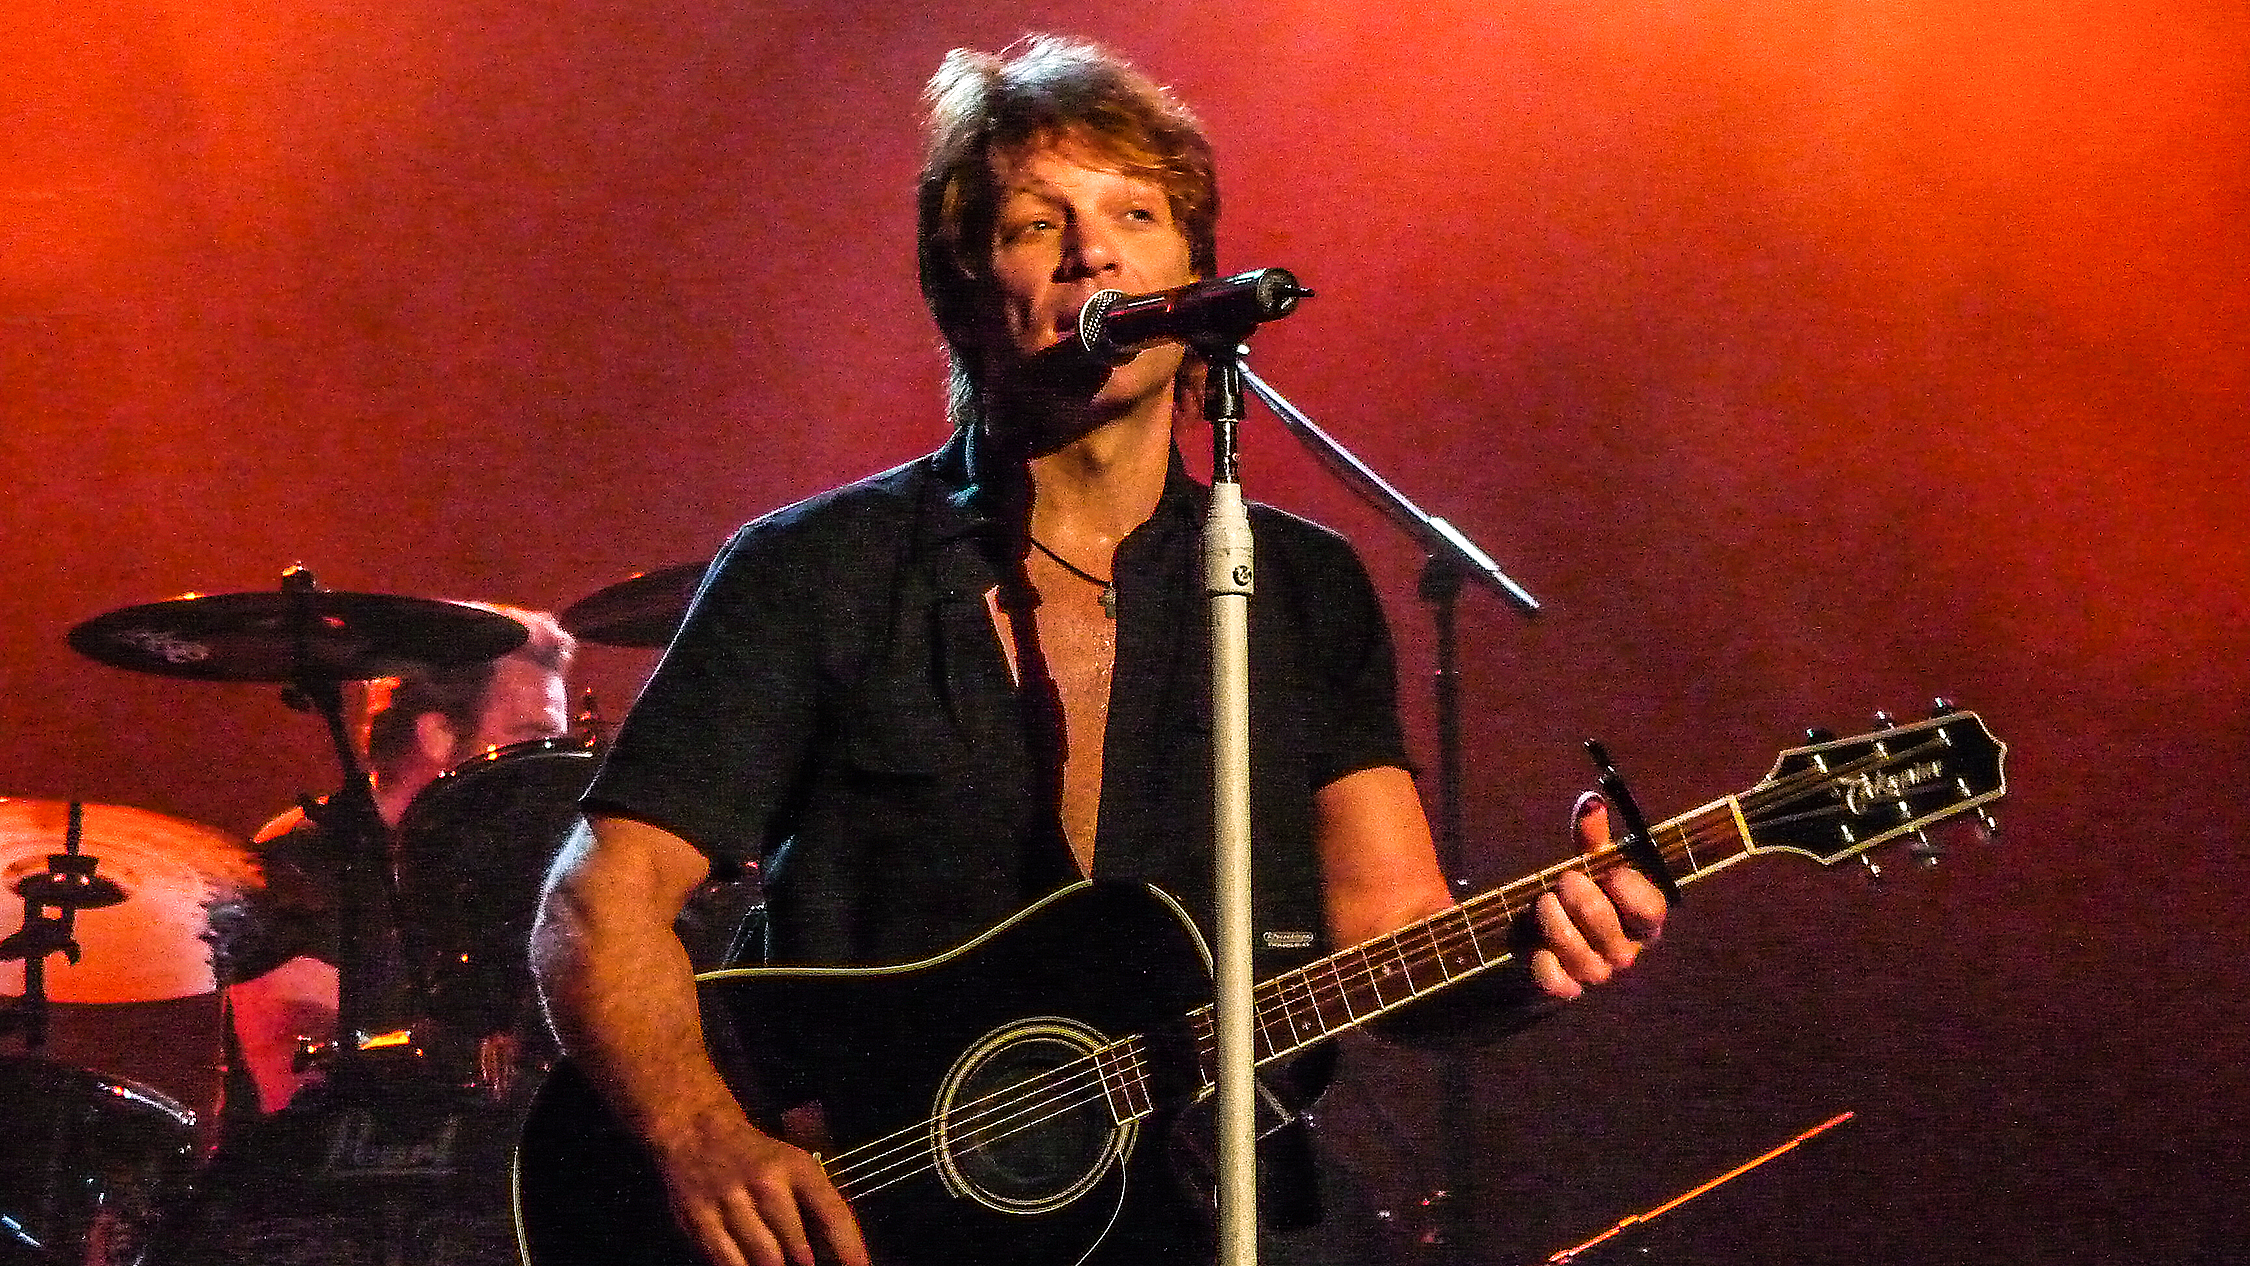 Musician Jon Bon Jovi in concert on stage holding a guitar